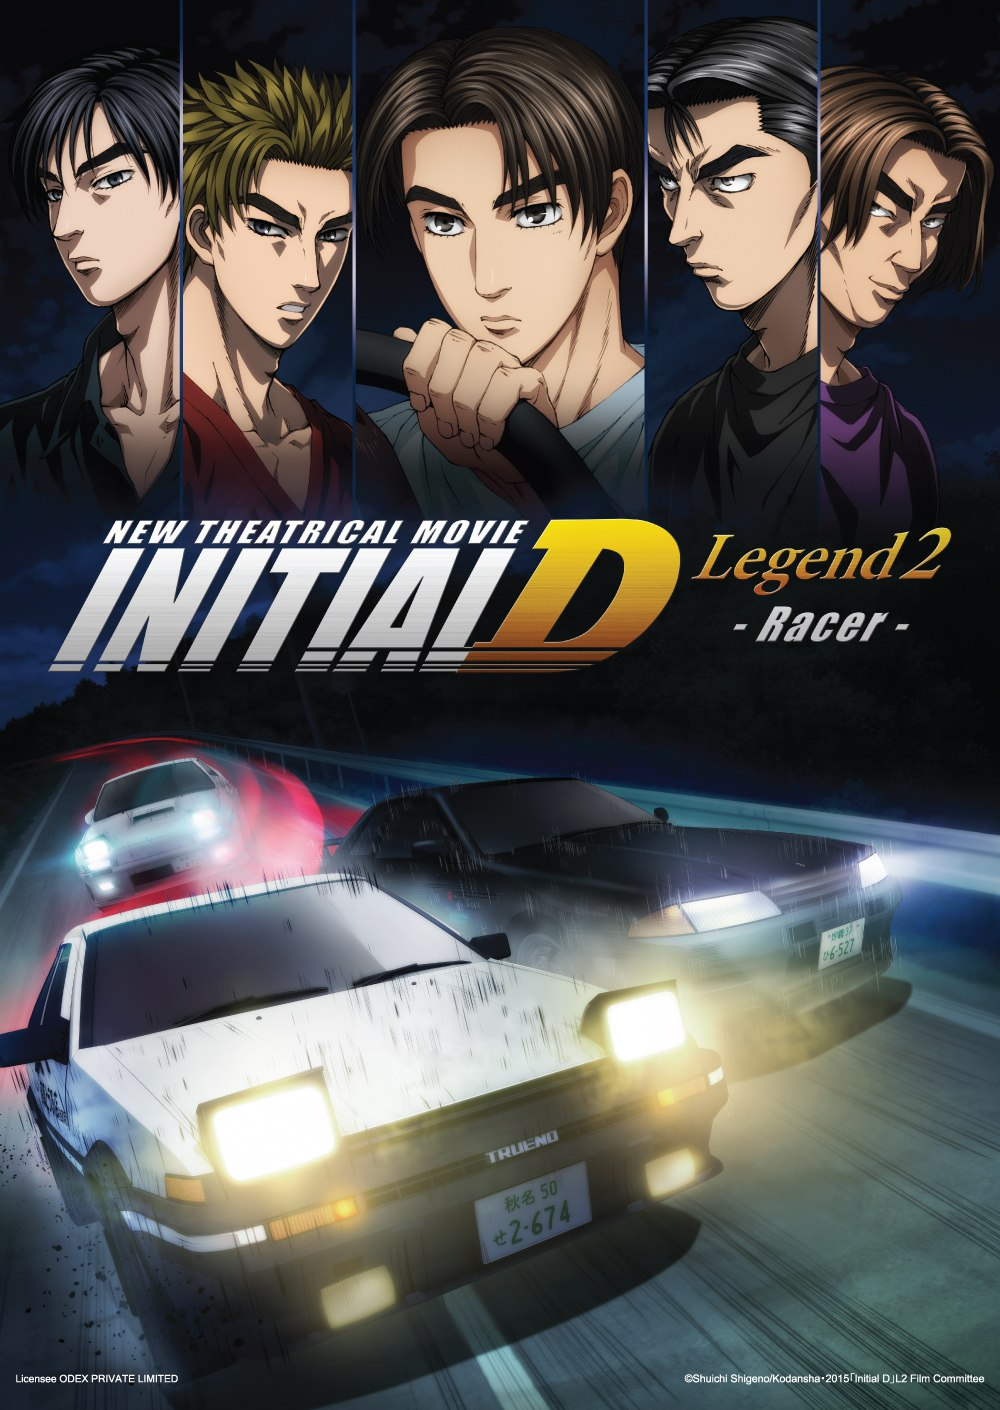 New Initial D the Movie: Legend 2 - Racer